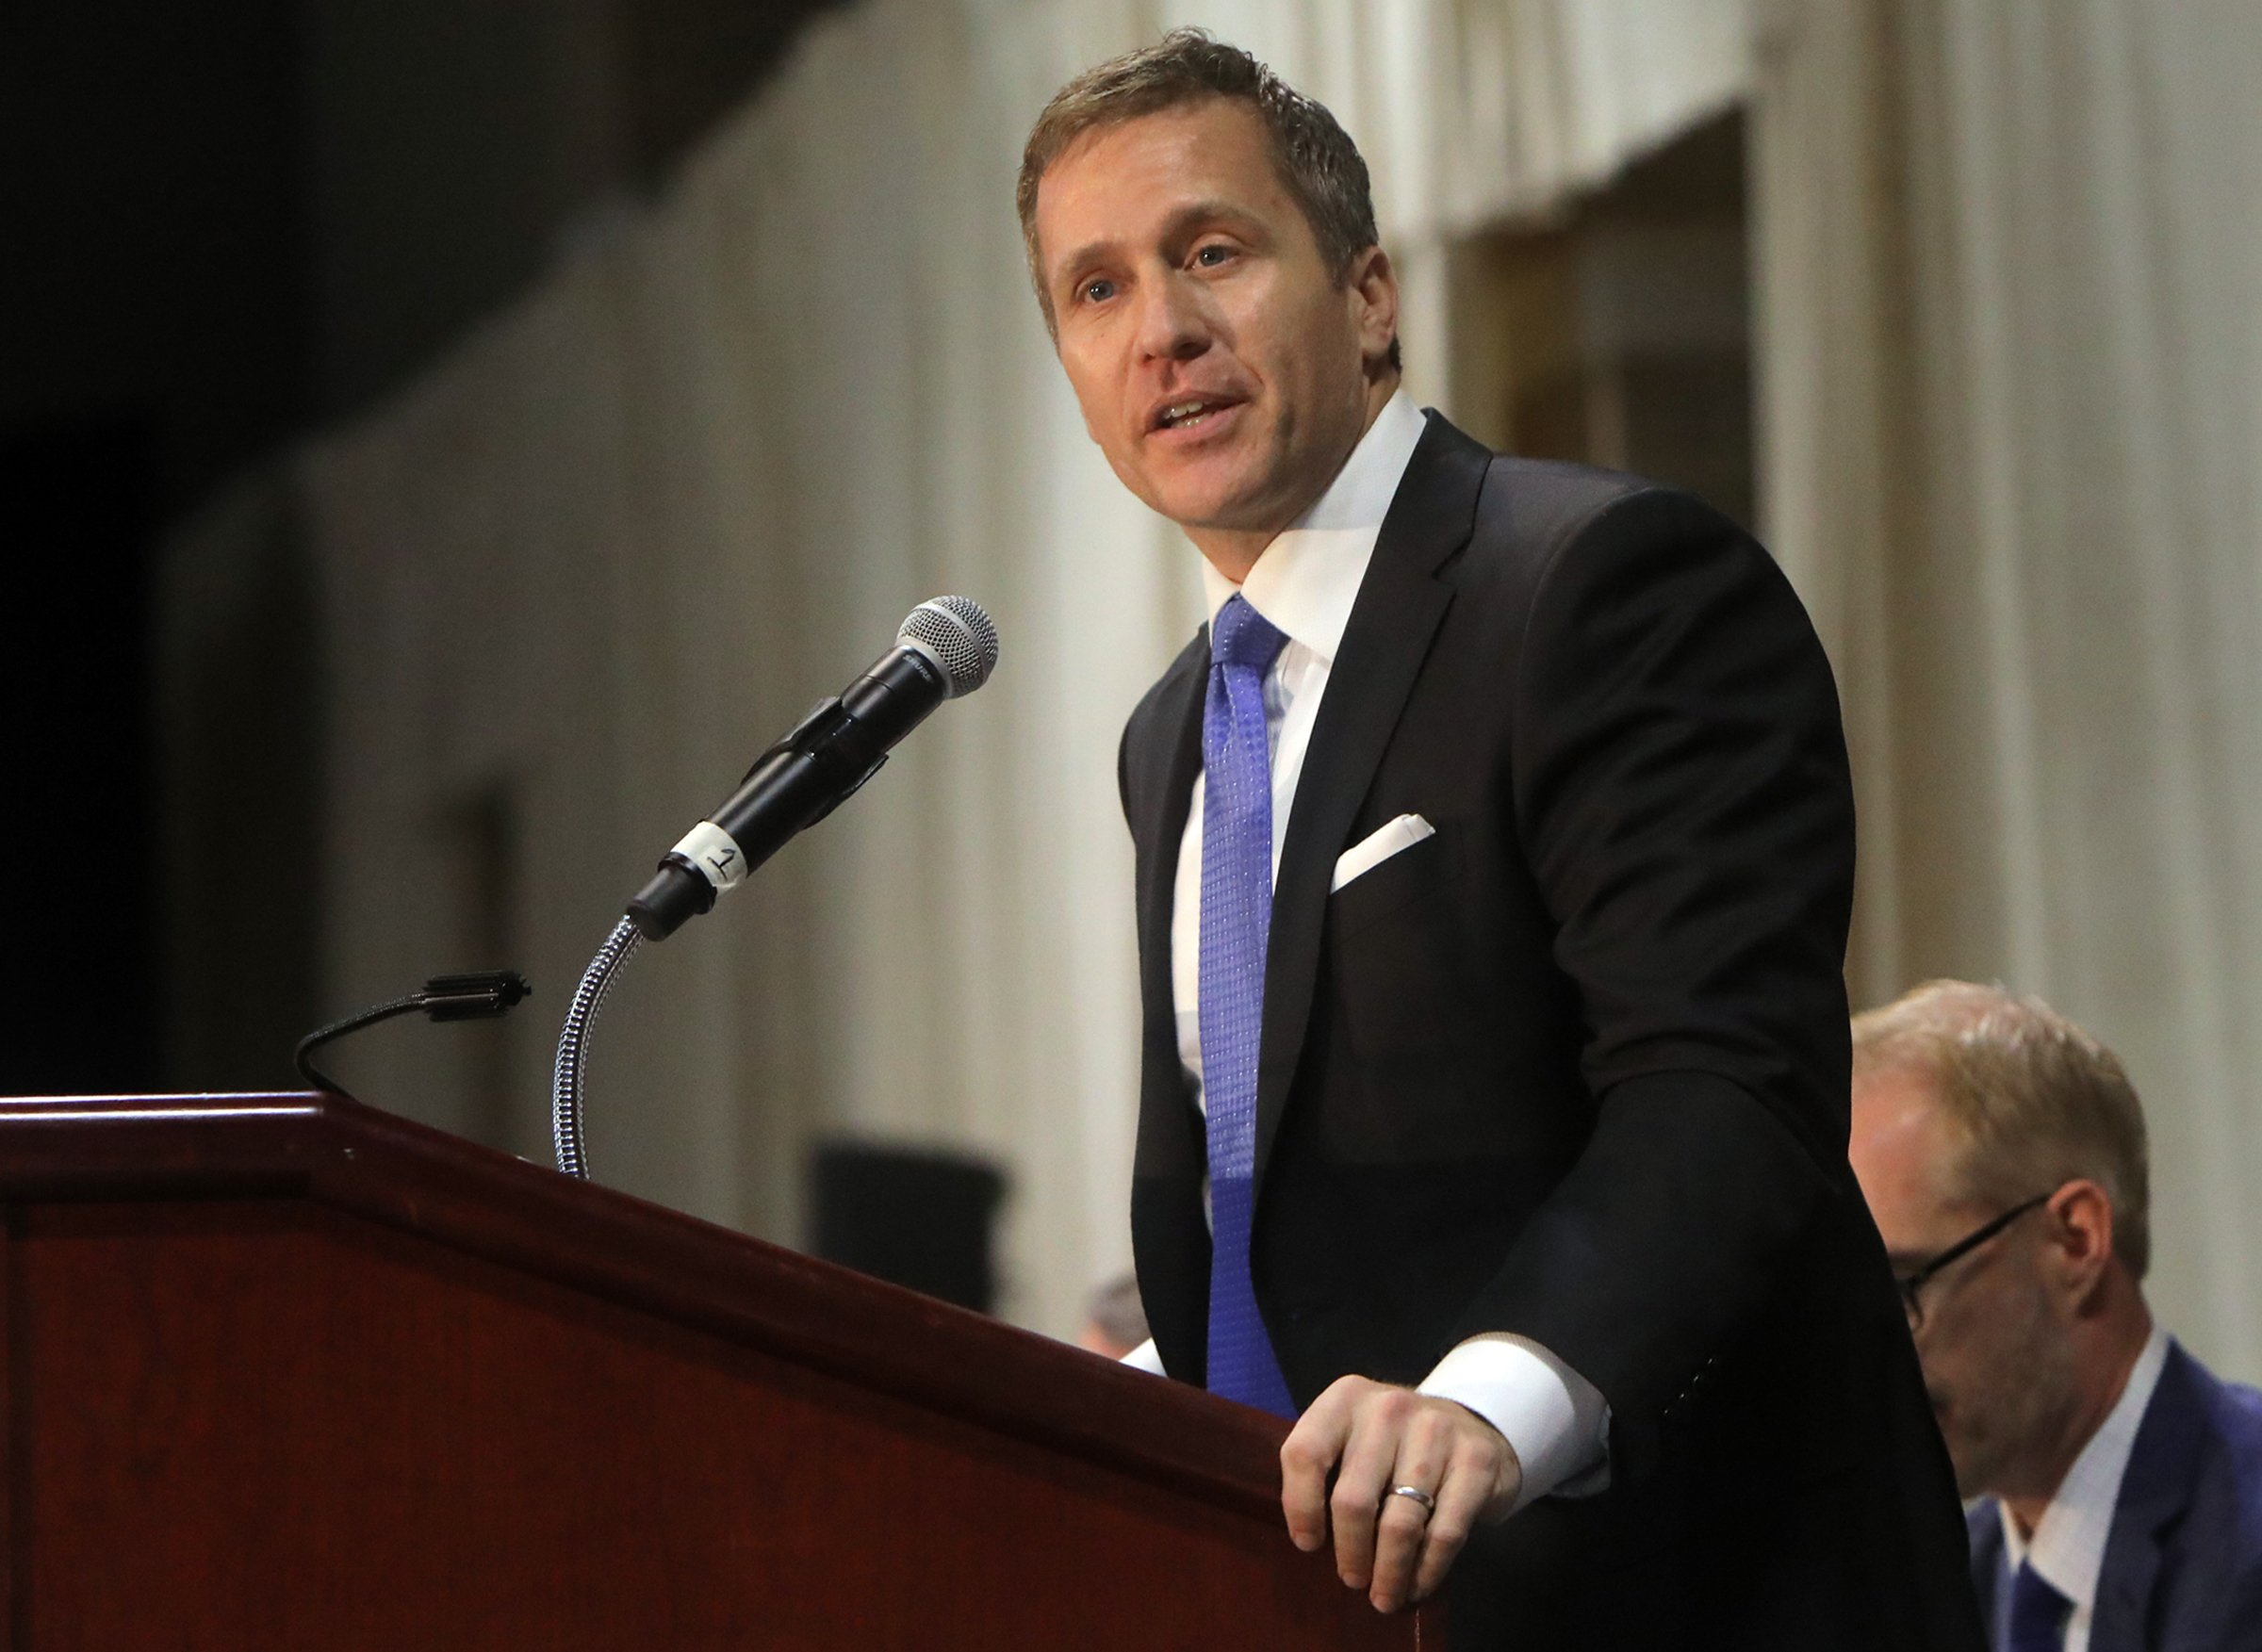 Gov. Eric Greitens delivers the keynote address at the 27th Annual Police Officer Memorial Prayer Breakfast in St. Louis, Missouri on on April 25, 2018.